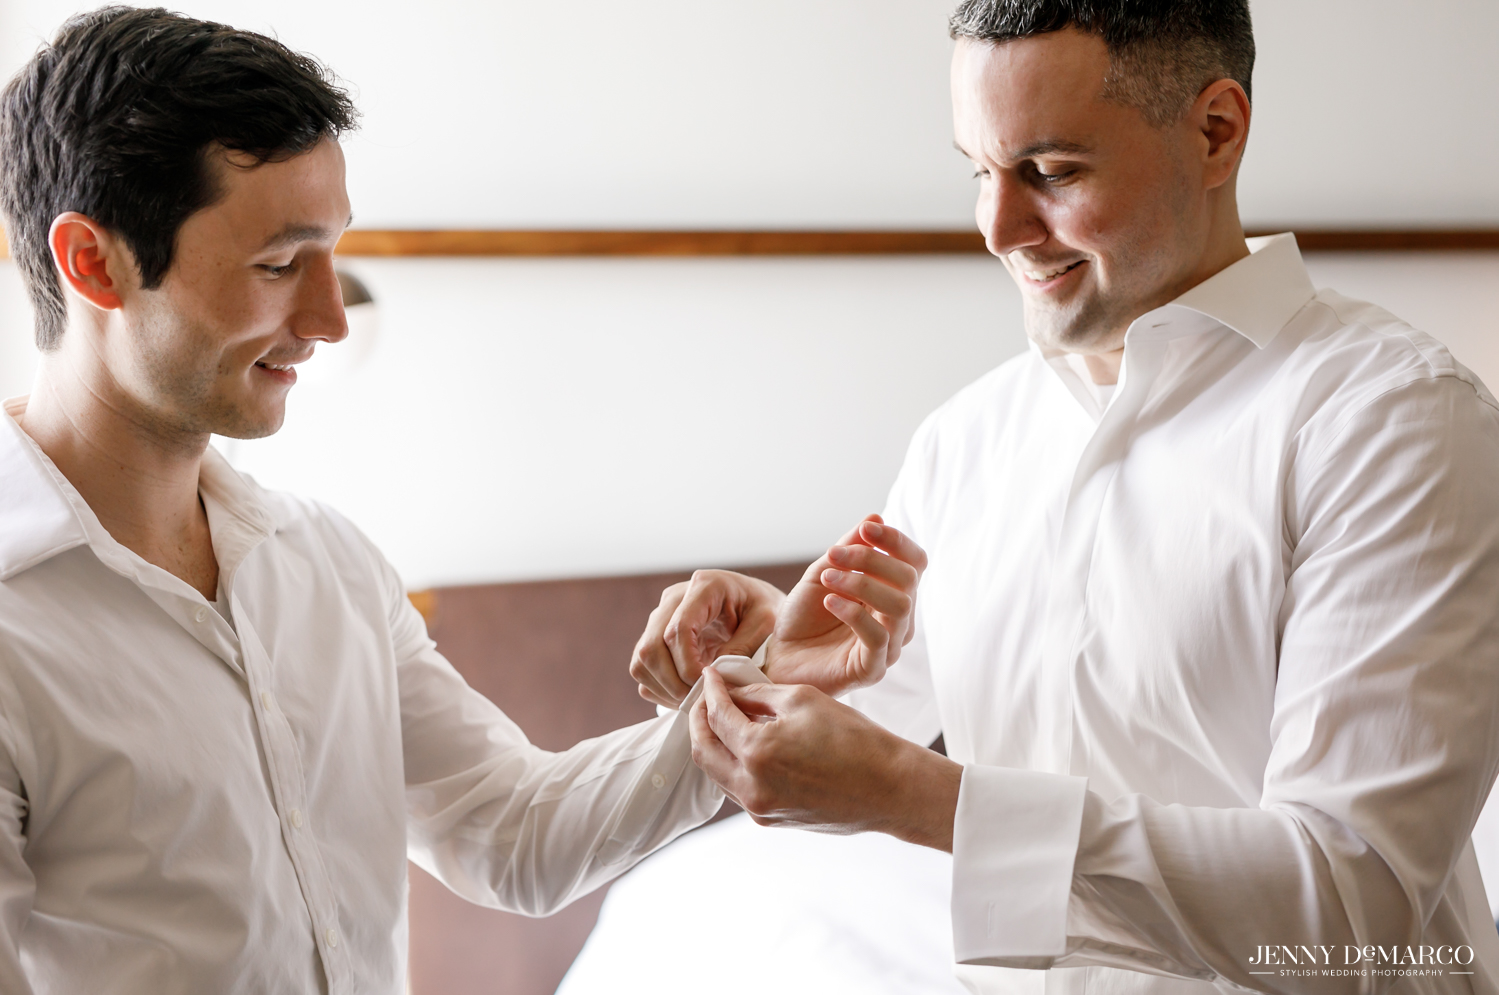 Grooms' helping each other get ready